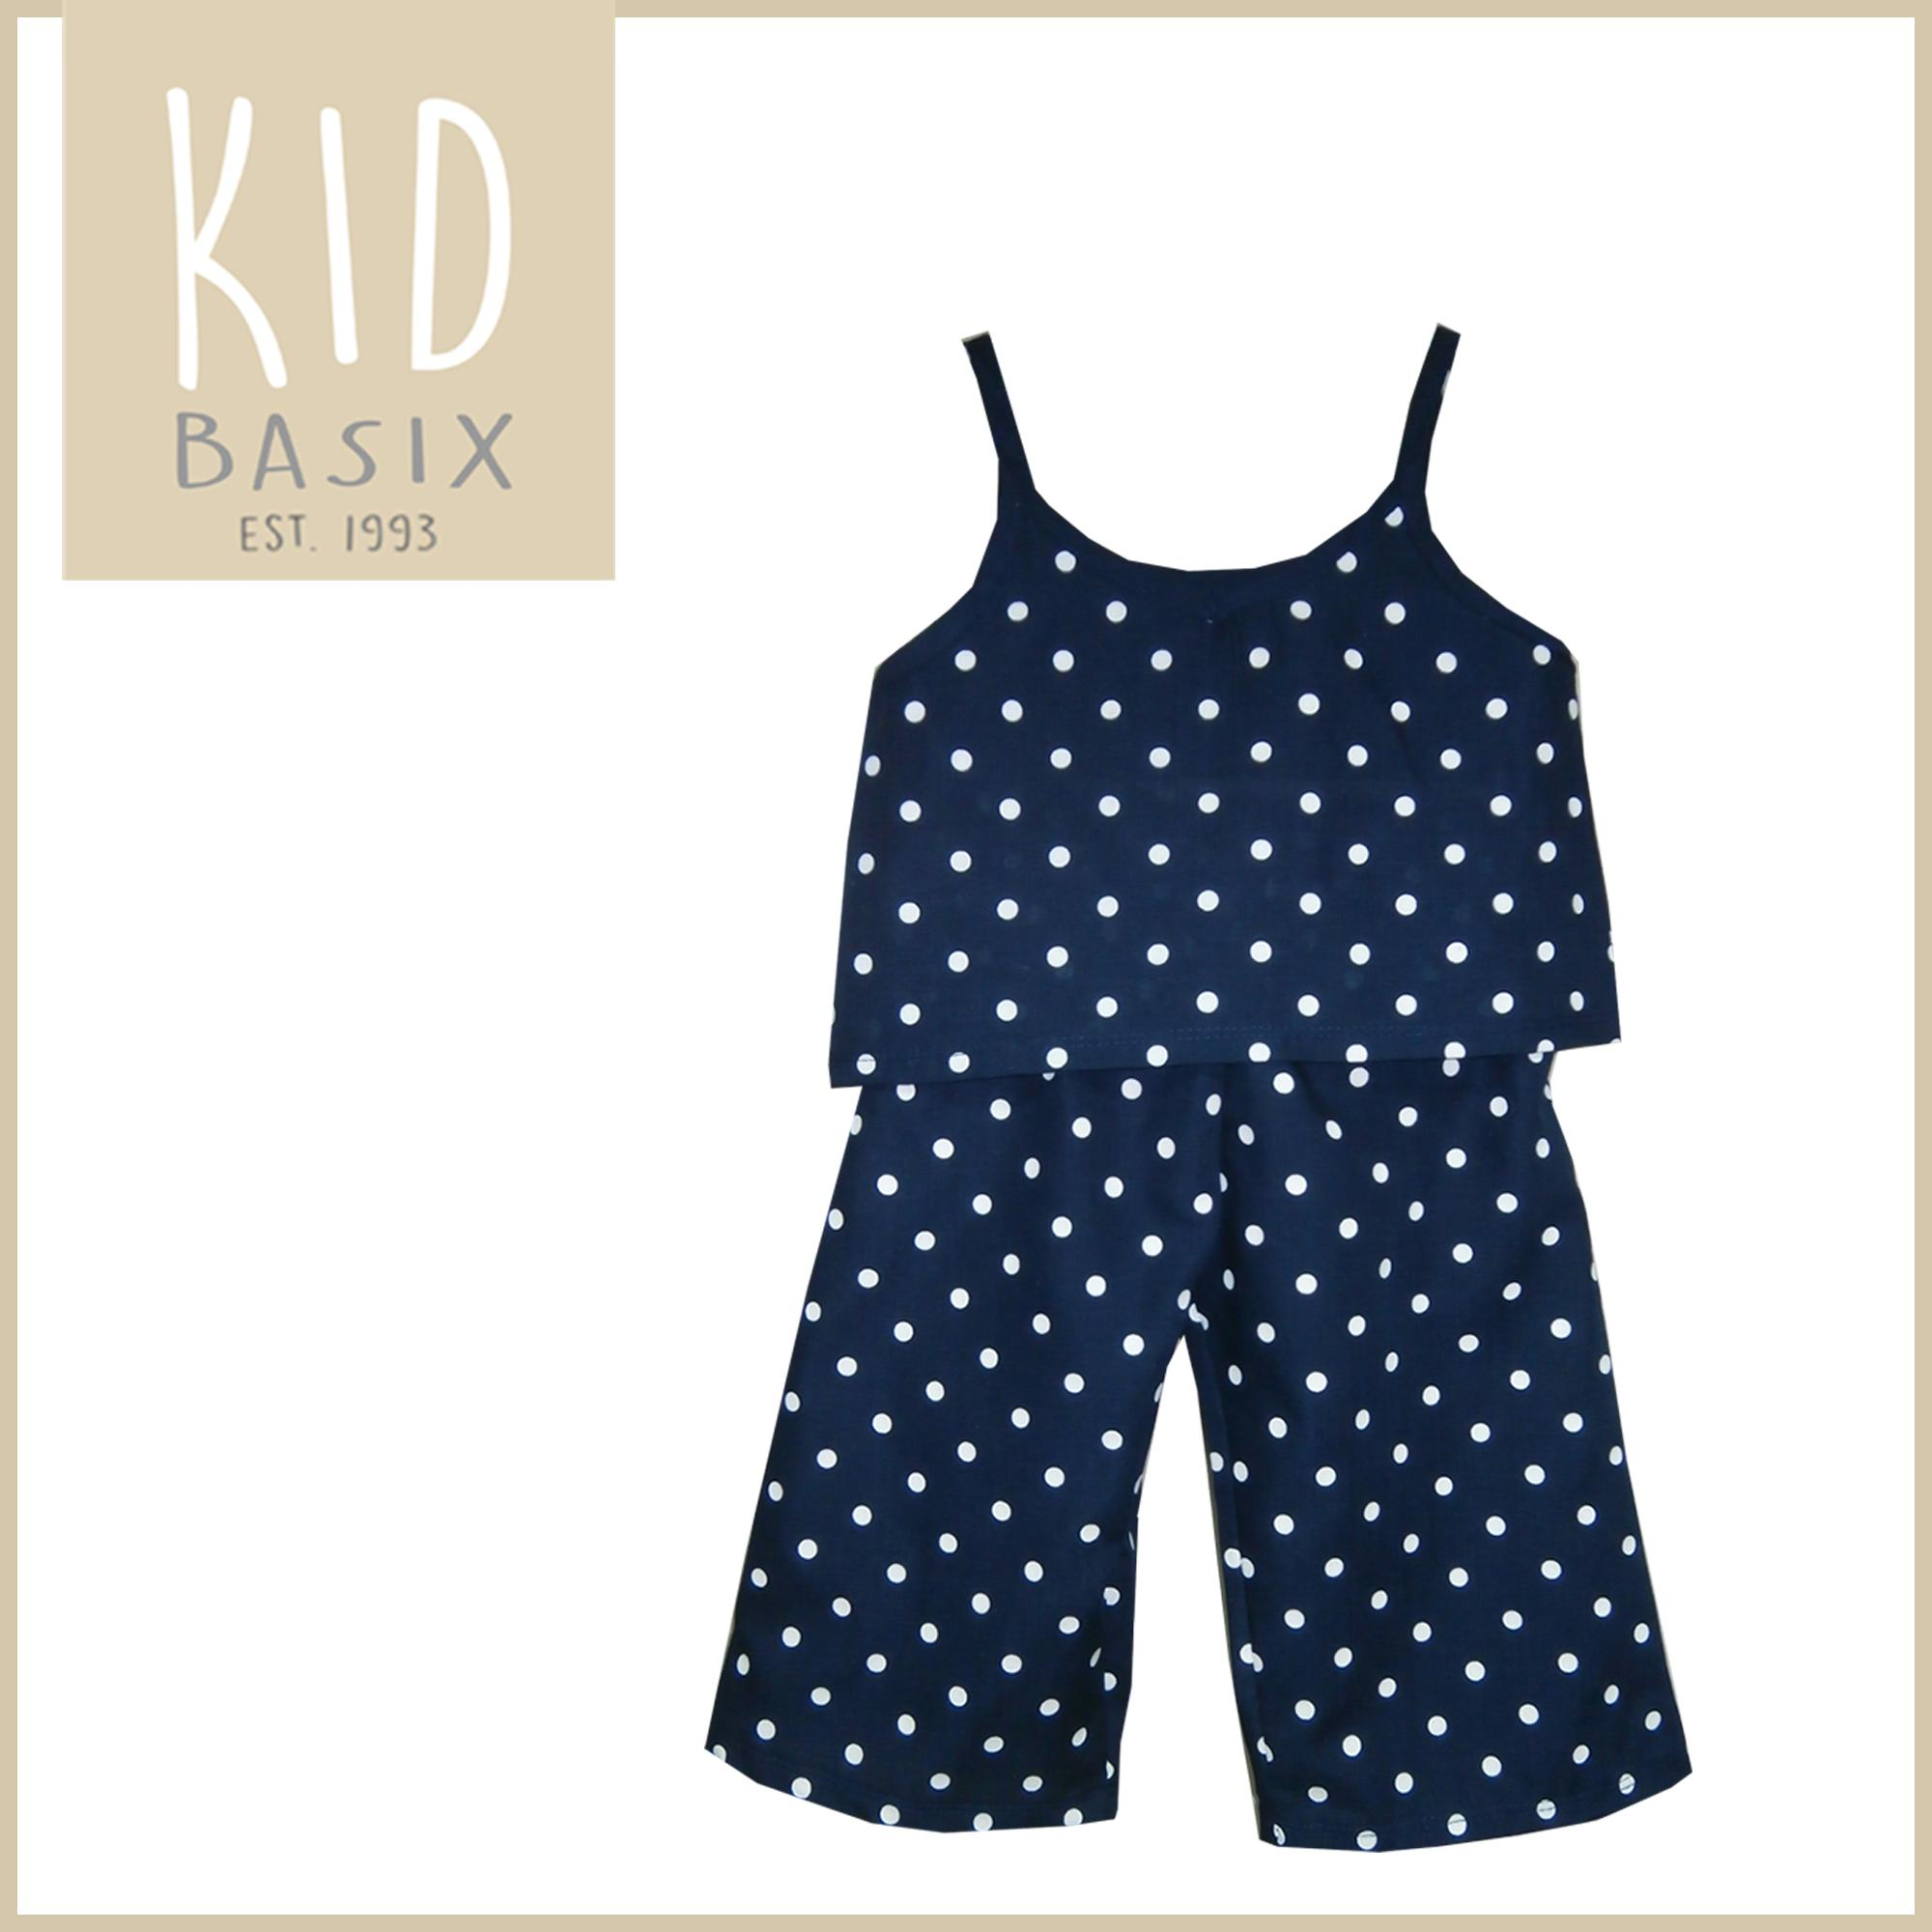 7a675618c Kid Basix Kids Clothes for Girls Terno Navy Polka Dots Girls (Code - 4151)